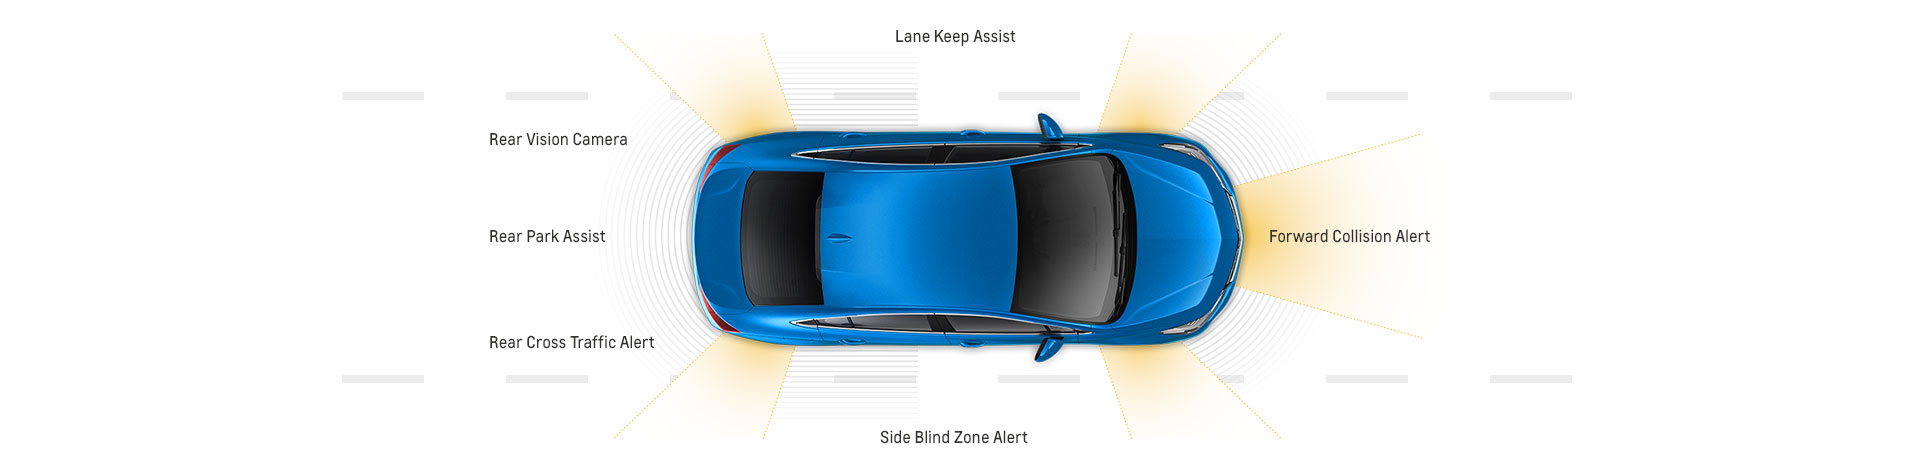 A top-down view of a blue 2017 Chevy Cruze with simulated safety features on all sides.